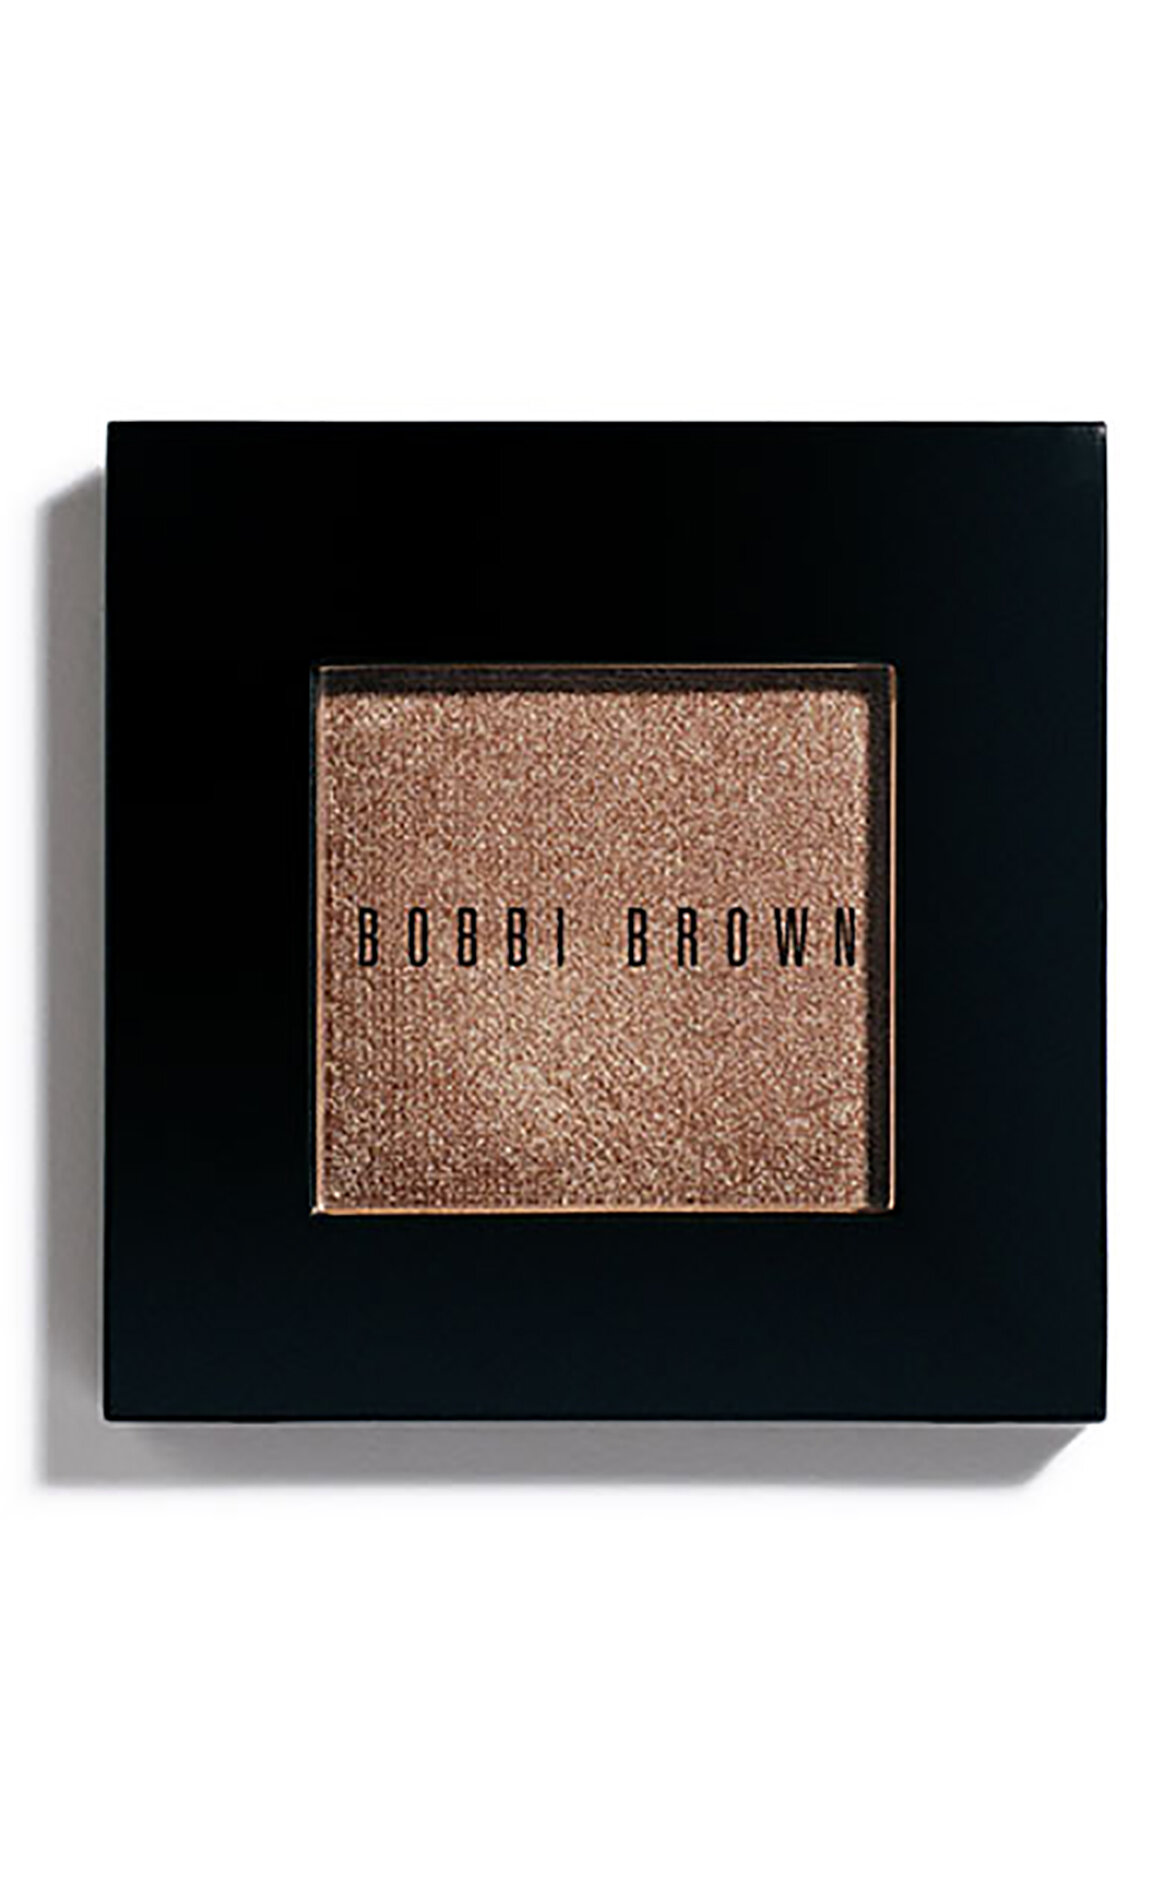 Bobbi Brown-Bobbi Brown Metallics Eye Shadow Burnt Sugar Far